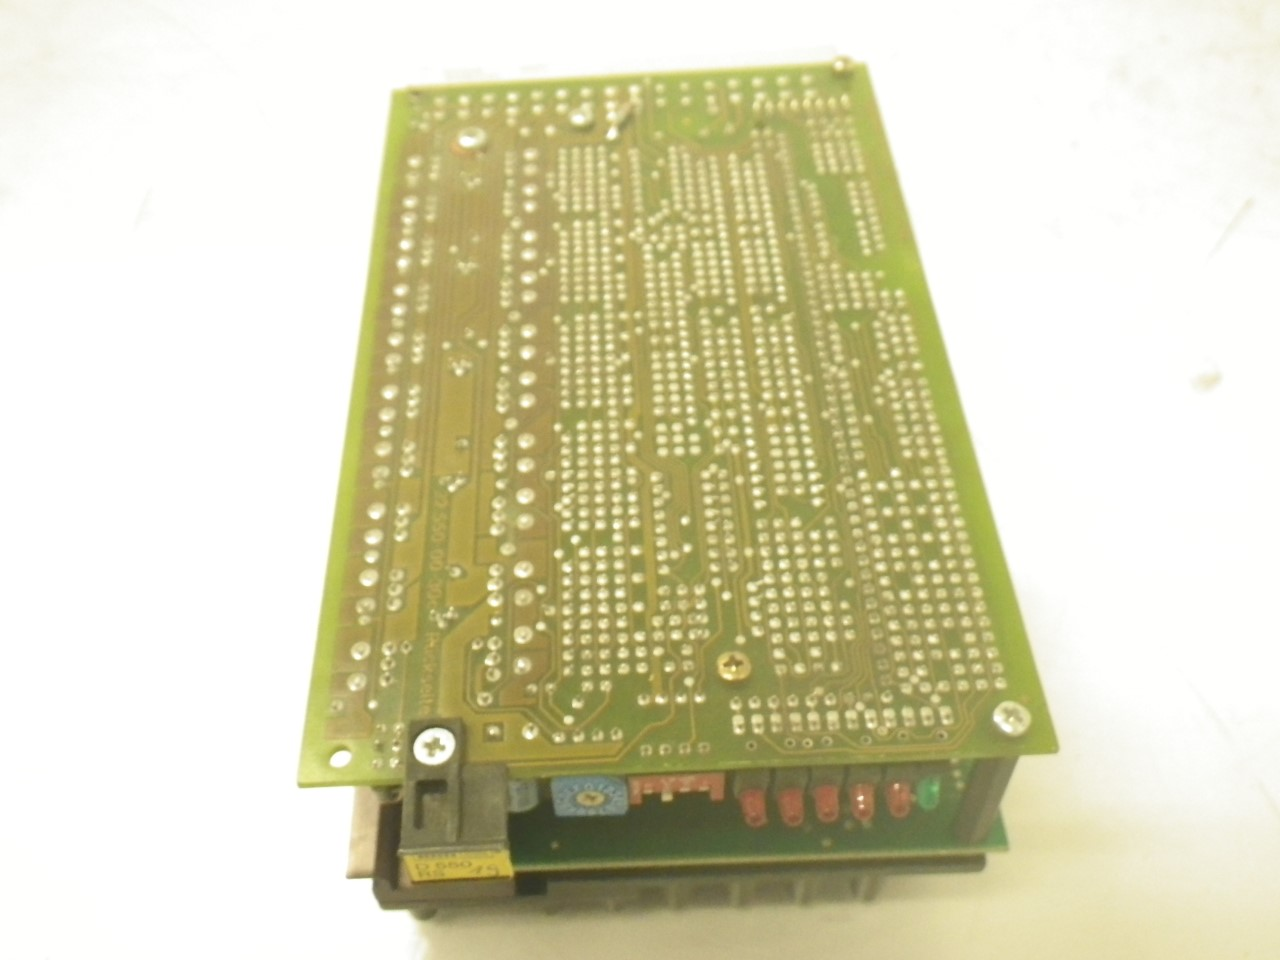 IMGP8387D 550 RS 19 Berger Lahr Stepper Drive + Siemens B1500-D325 Board(Used Tested) (11)